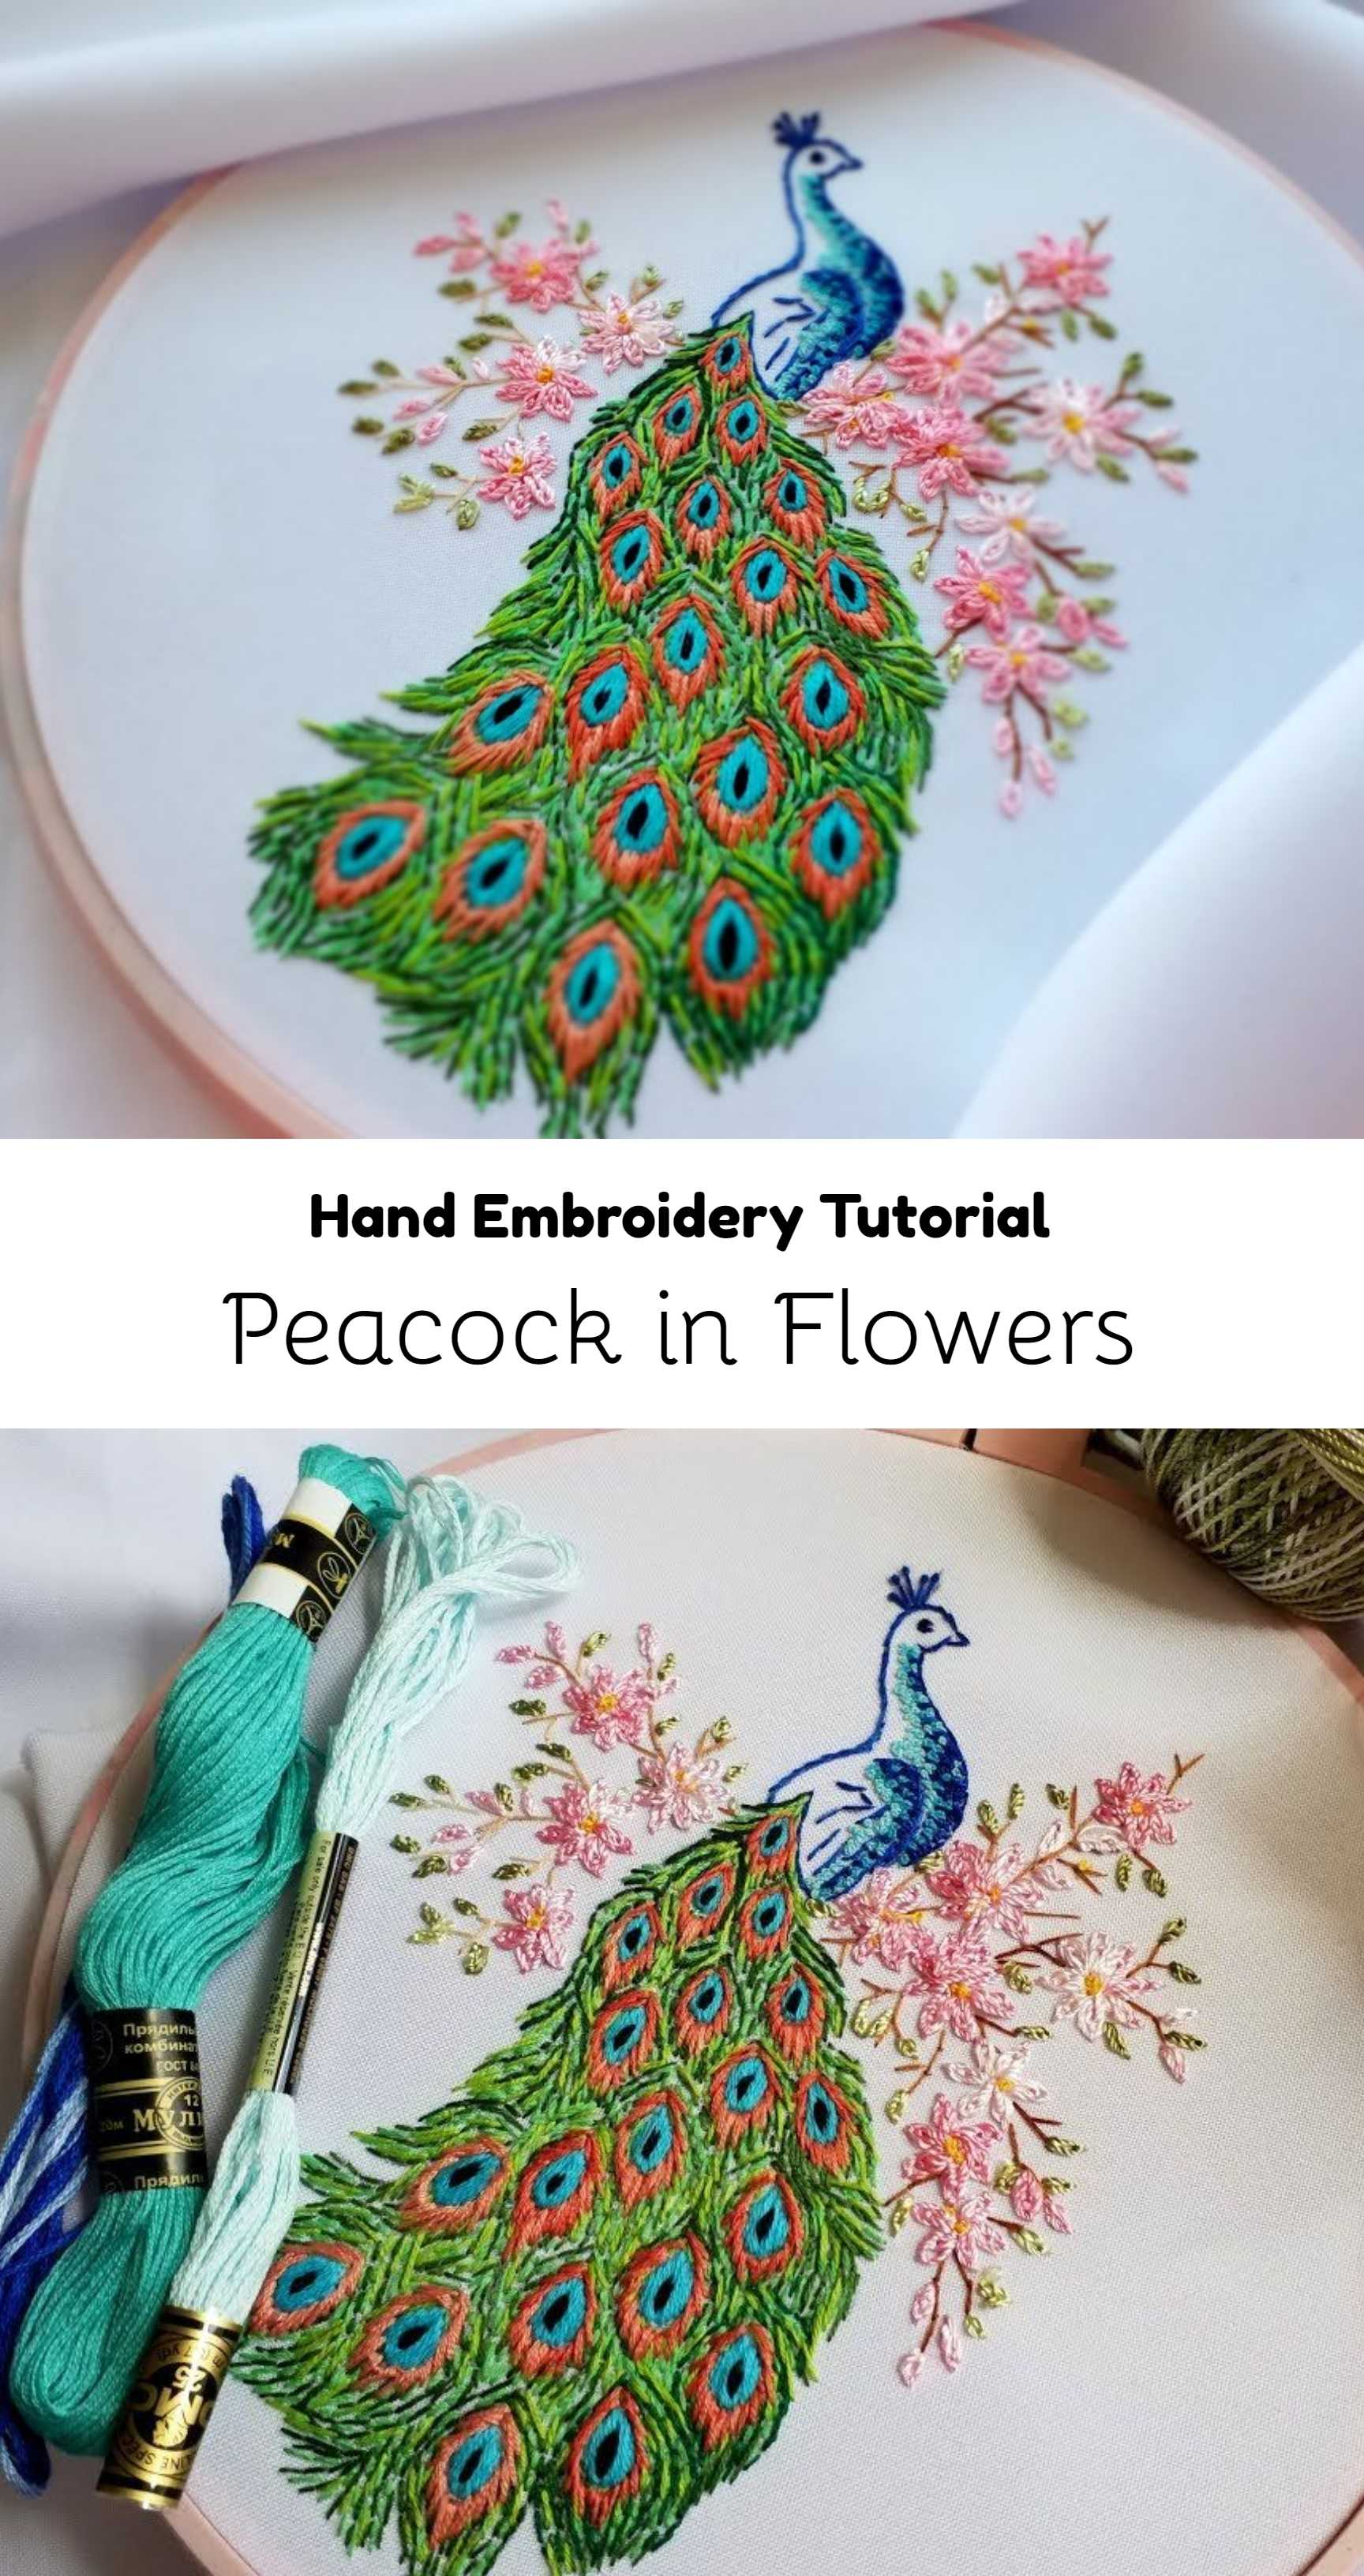 Peacock Embroidery Patterns Peacock In Flower Embroidery